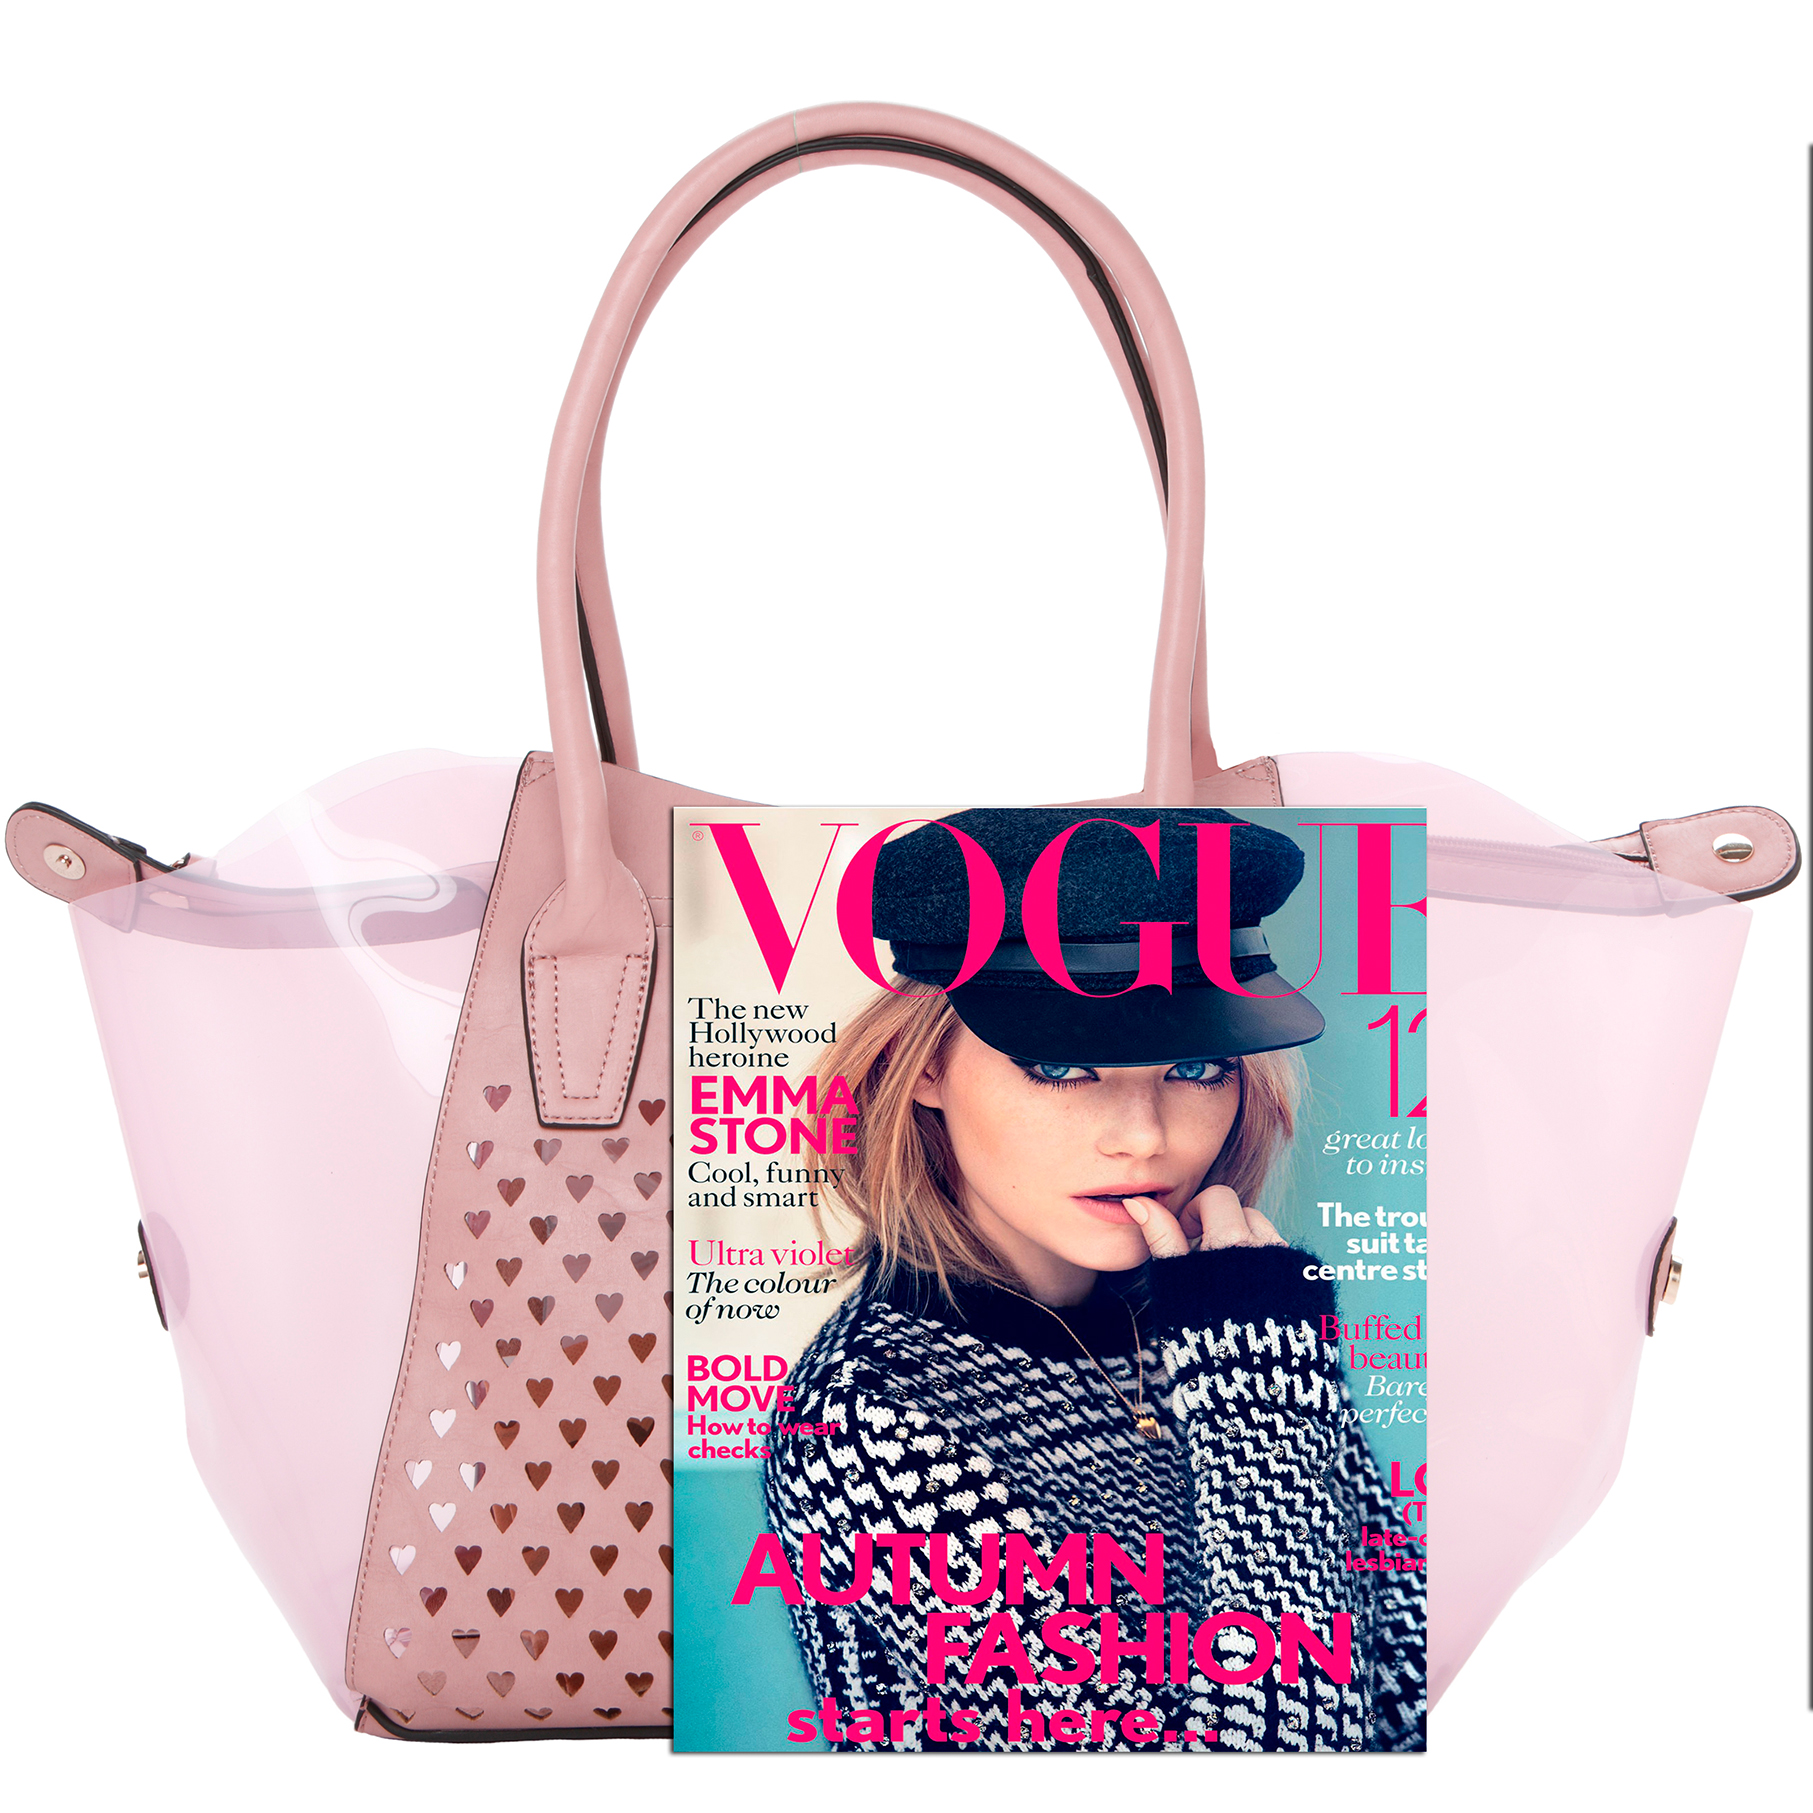 Lara pink 2 in 1 shopper tote size comparison image